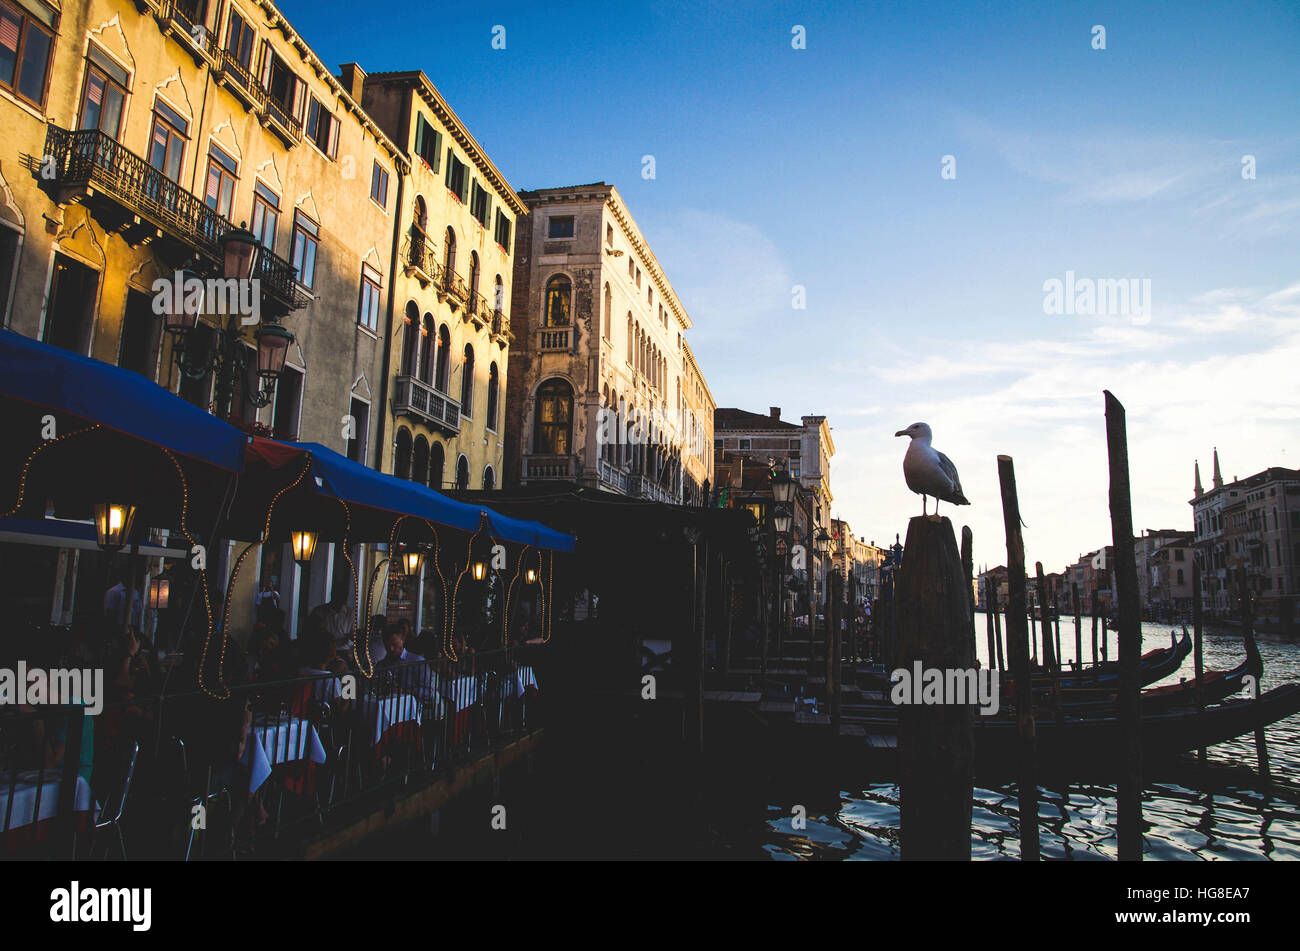 Seagull perching on wooden posts in canal against buildings - Stock Image